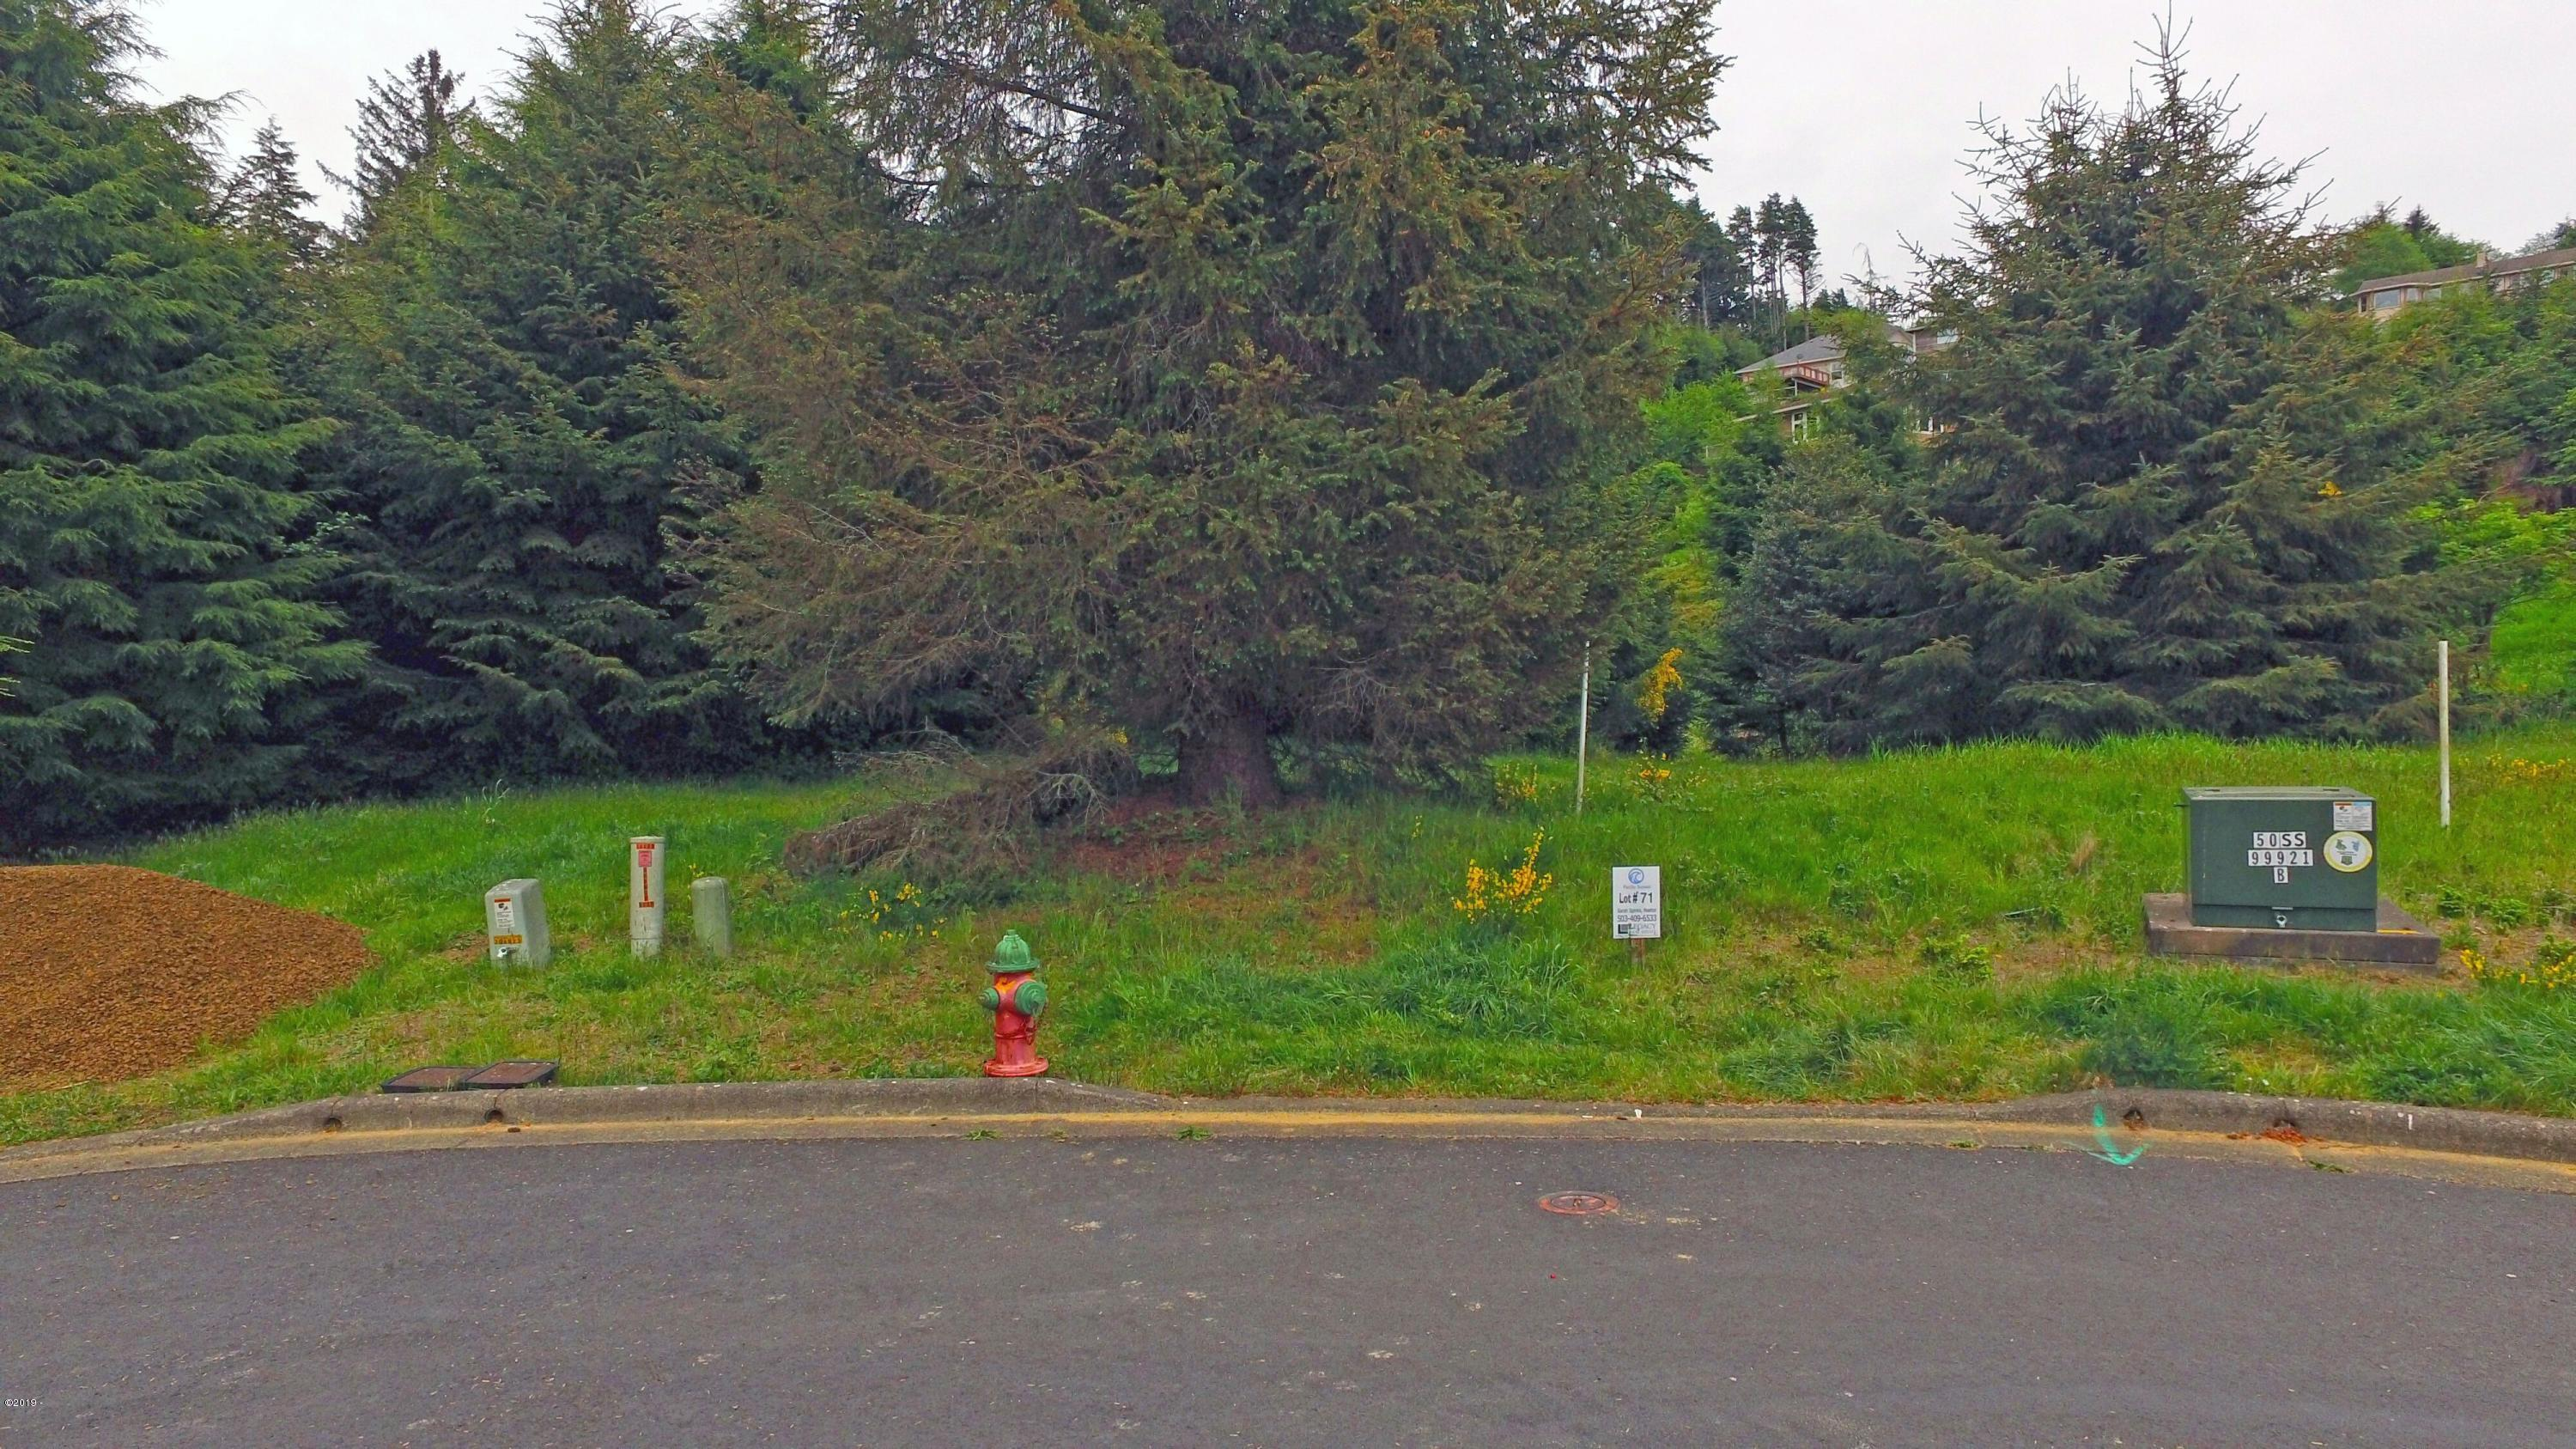 LT71 Kahana, Pacific City, OR 97135 - Lot 71